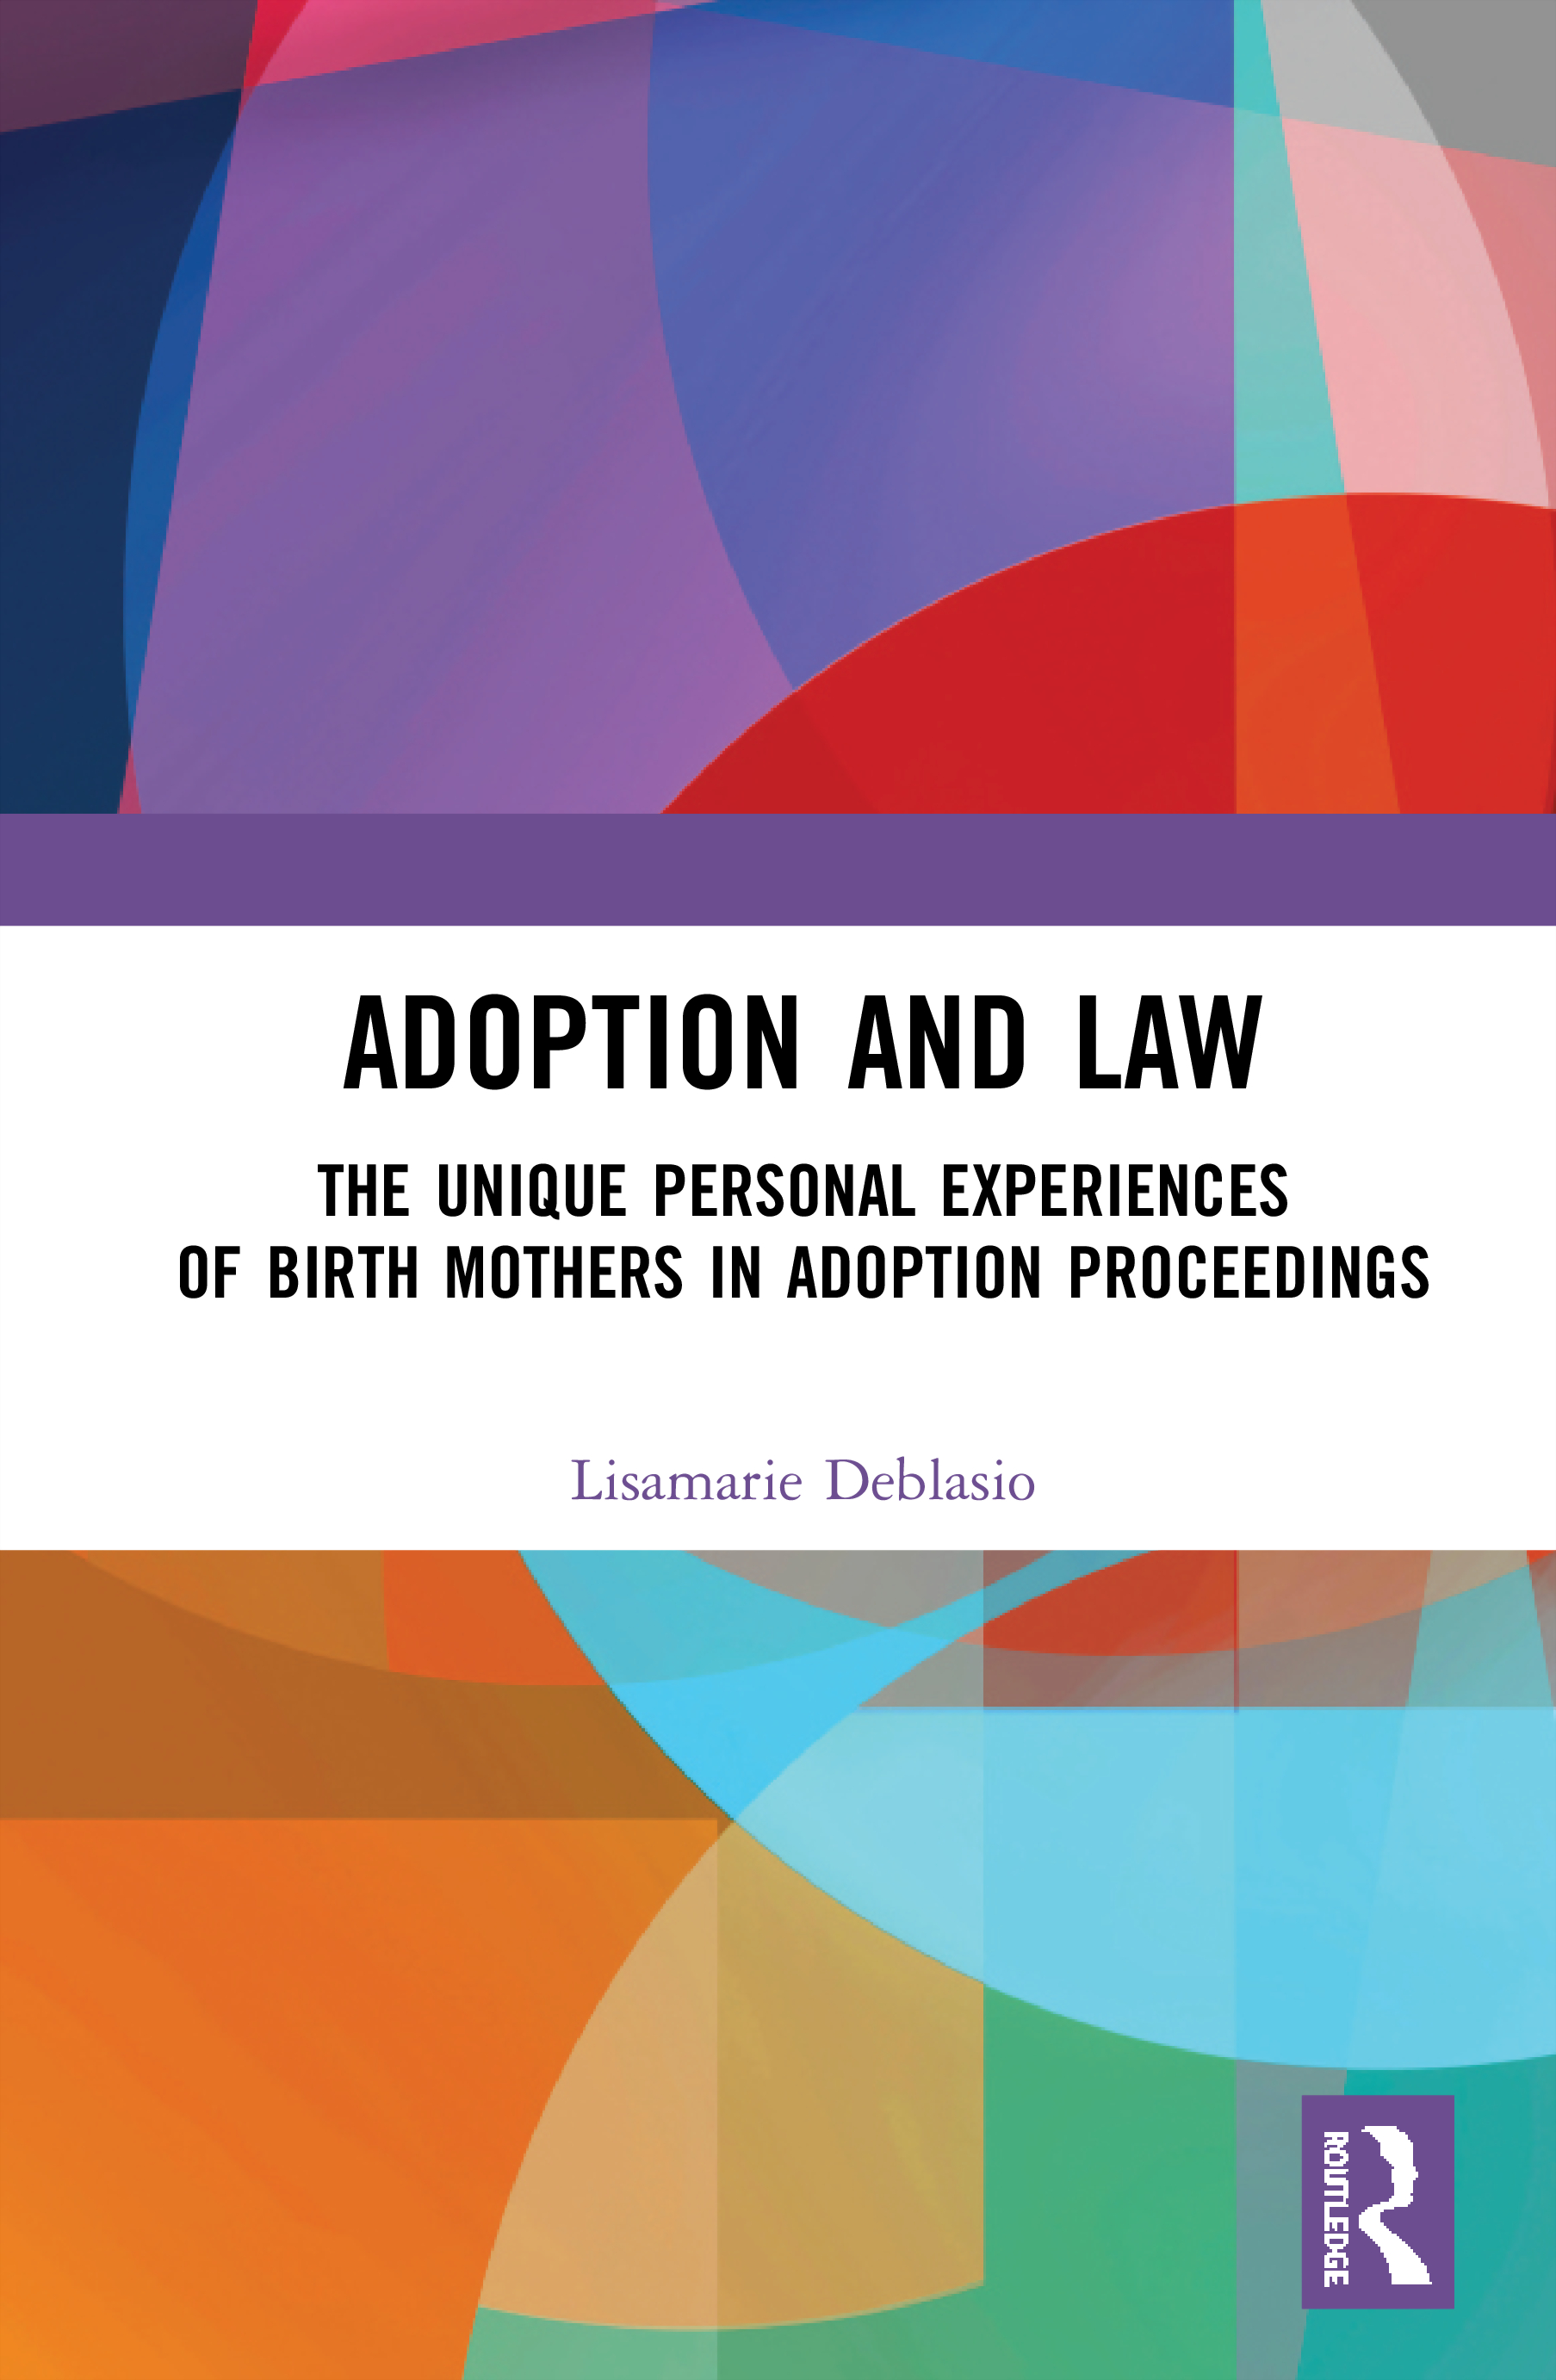 Adoption and the Law: The Unique Personal Experiences of Birth Mothers in Adoption Proceedings book cover